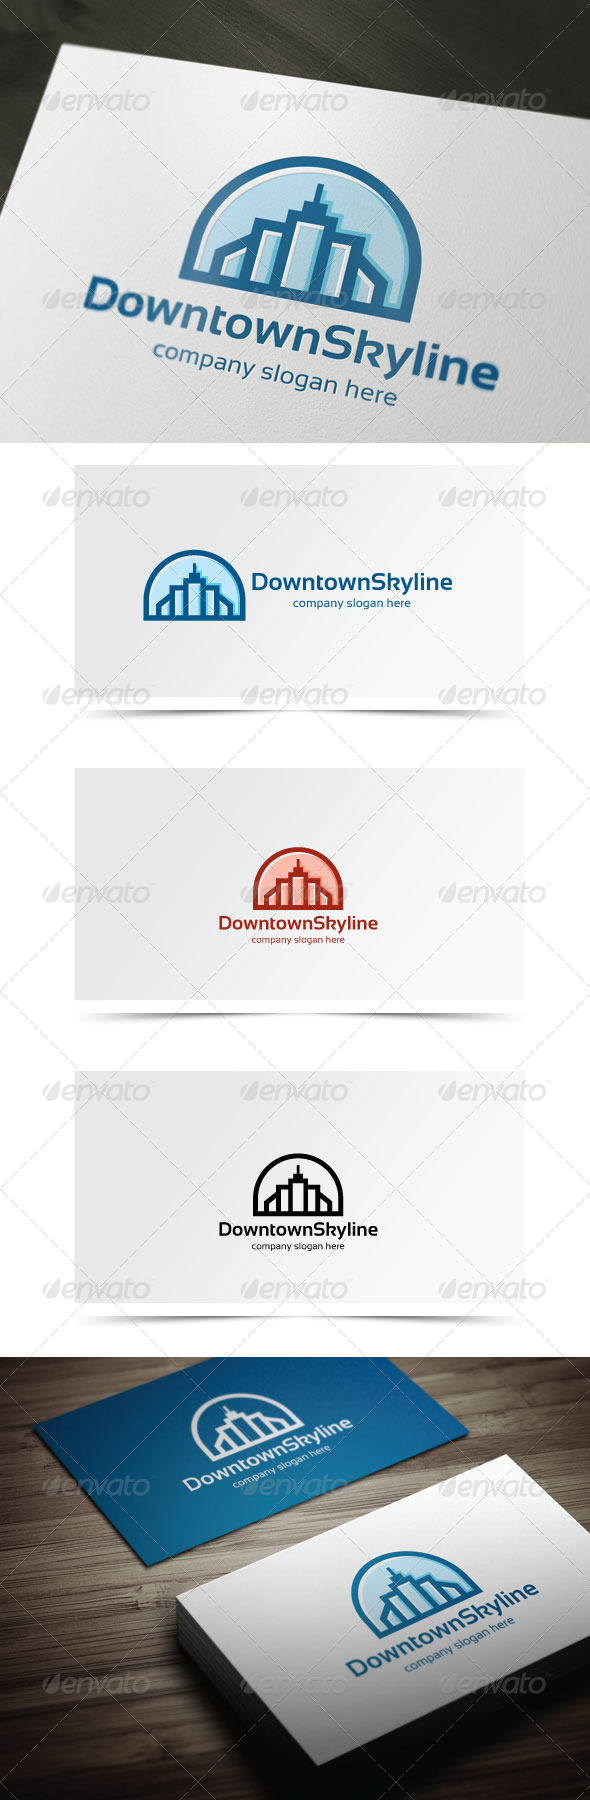 GraphicRiver Downtown Skyline 6280930